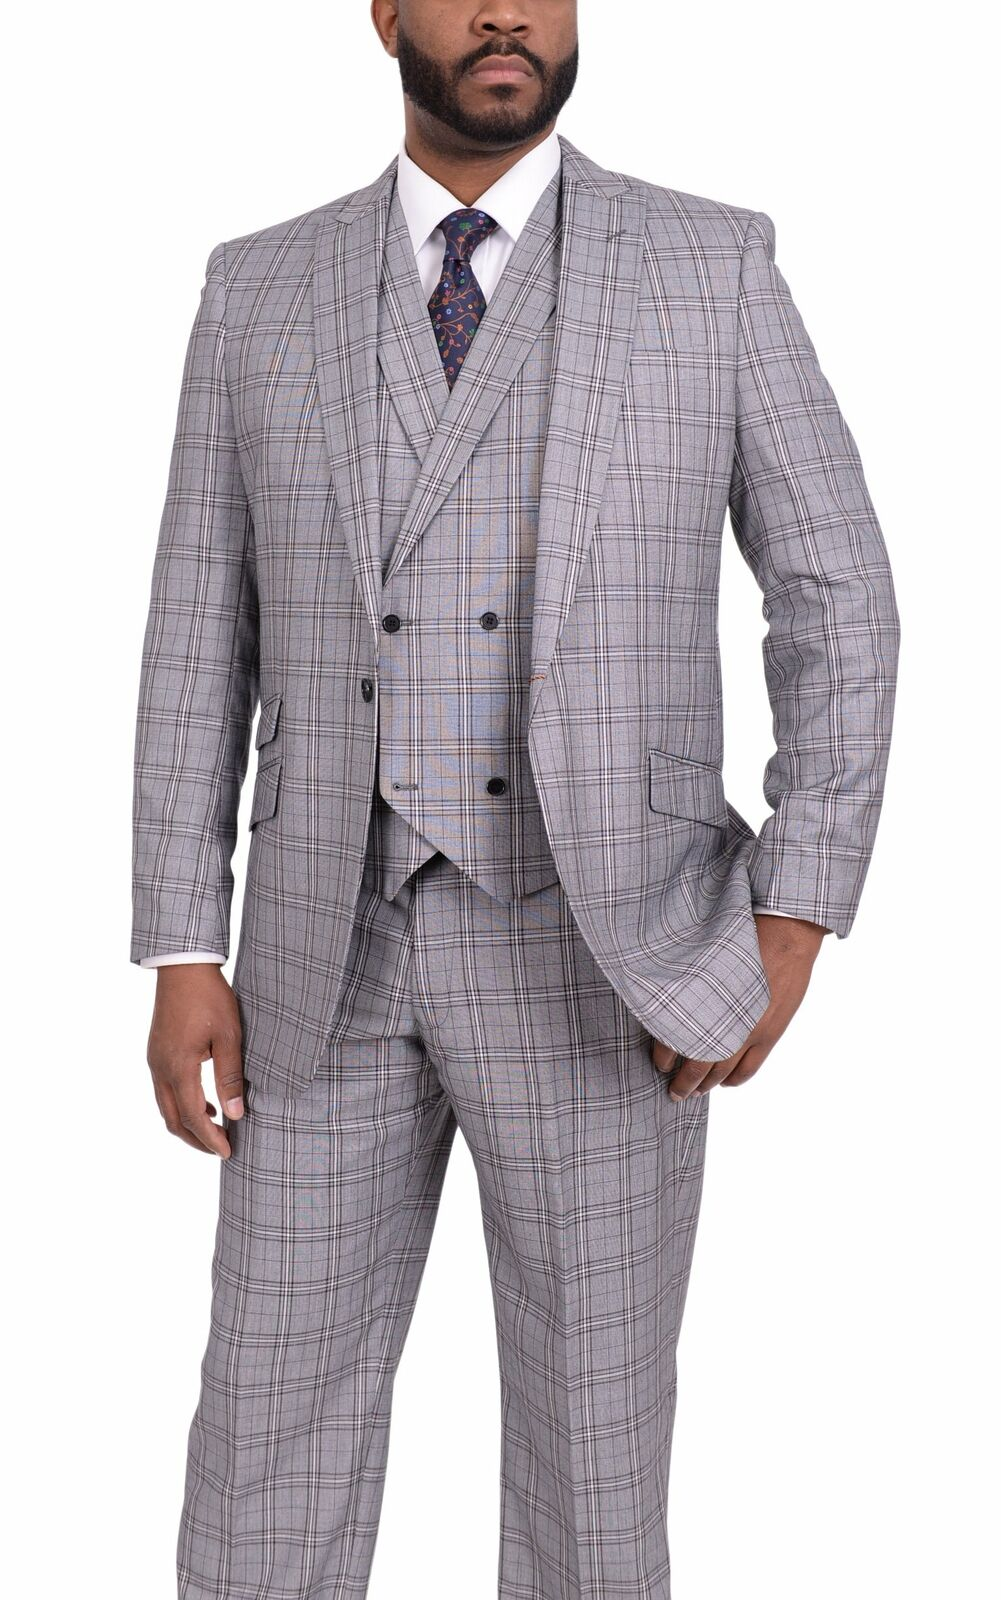 Vitali Classic Fit Charcoal Plaid Plaid Plaid Three Piece One Button Vested Suit Peak Lapels a34